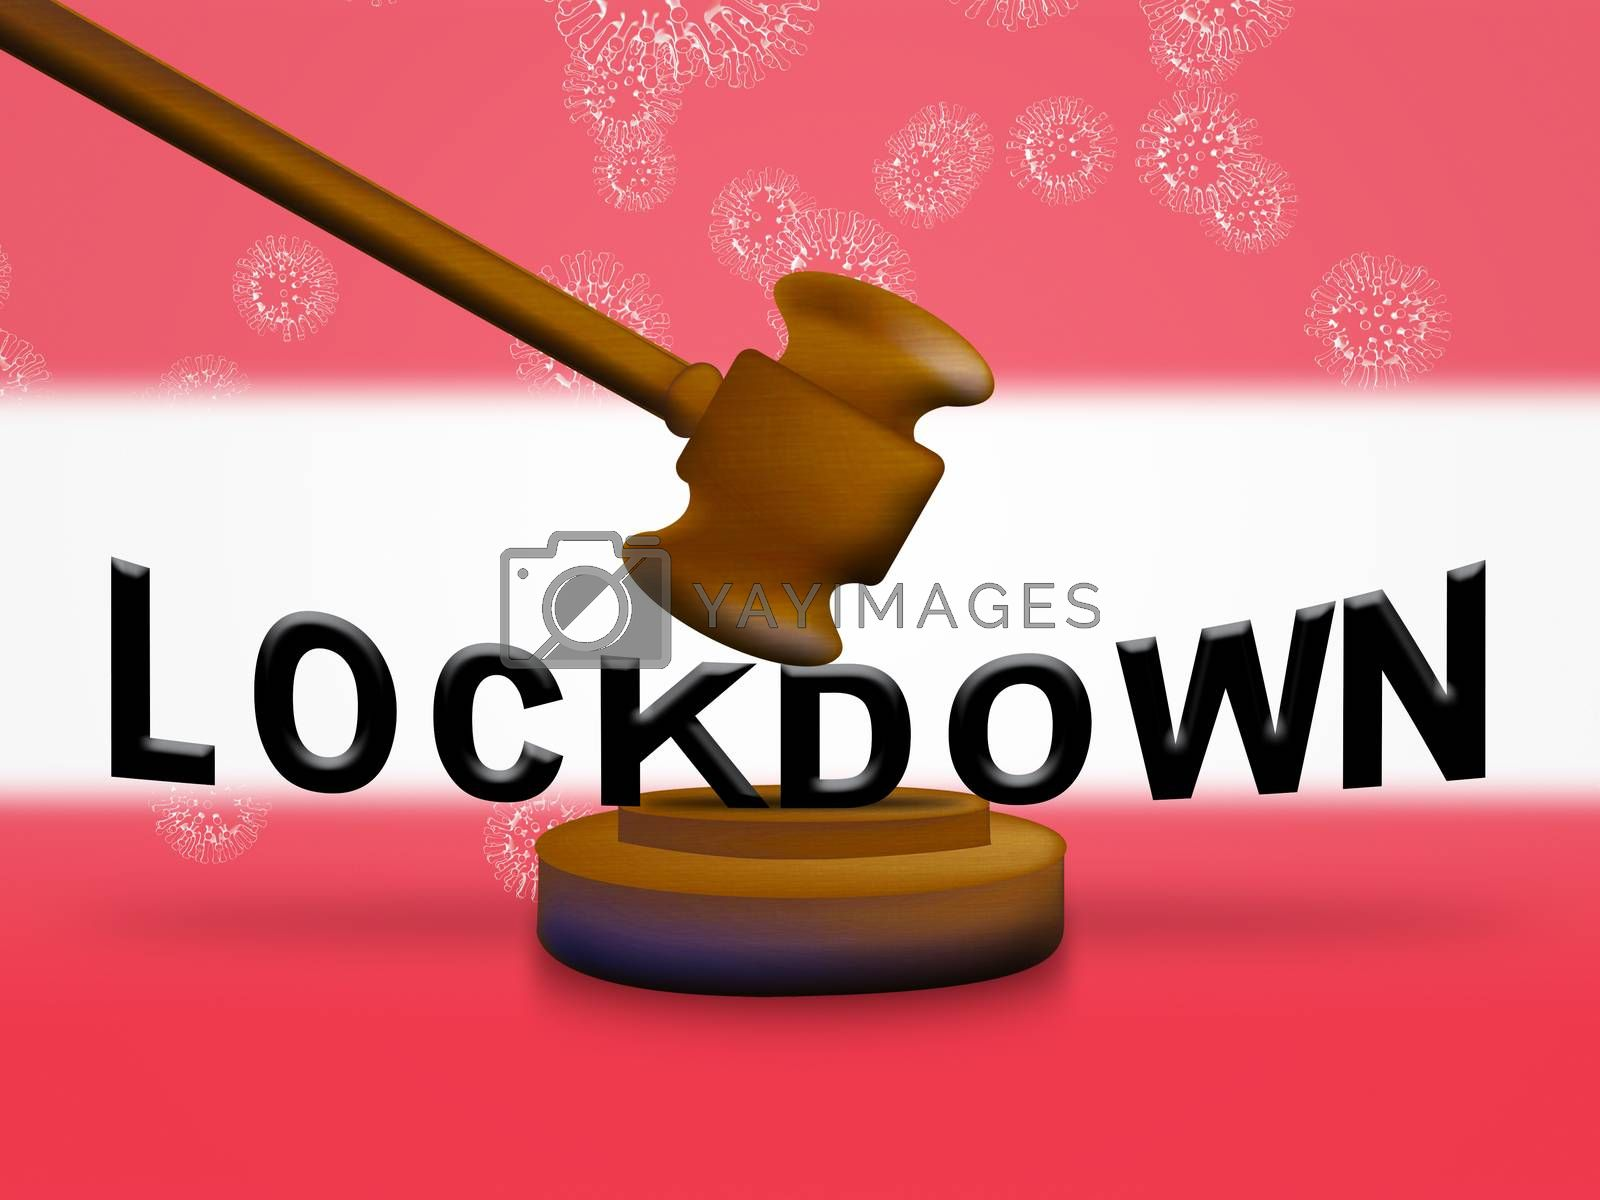 Austria lockdown in solitary confinement or stay home. Austrian lock down from covid-19 pandemic - 3d Illustration